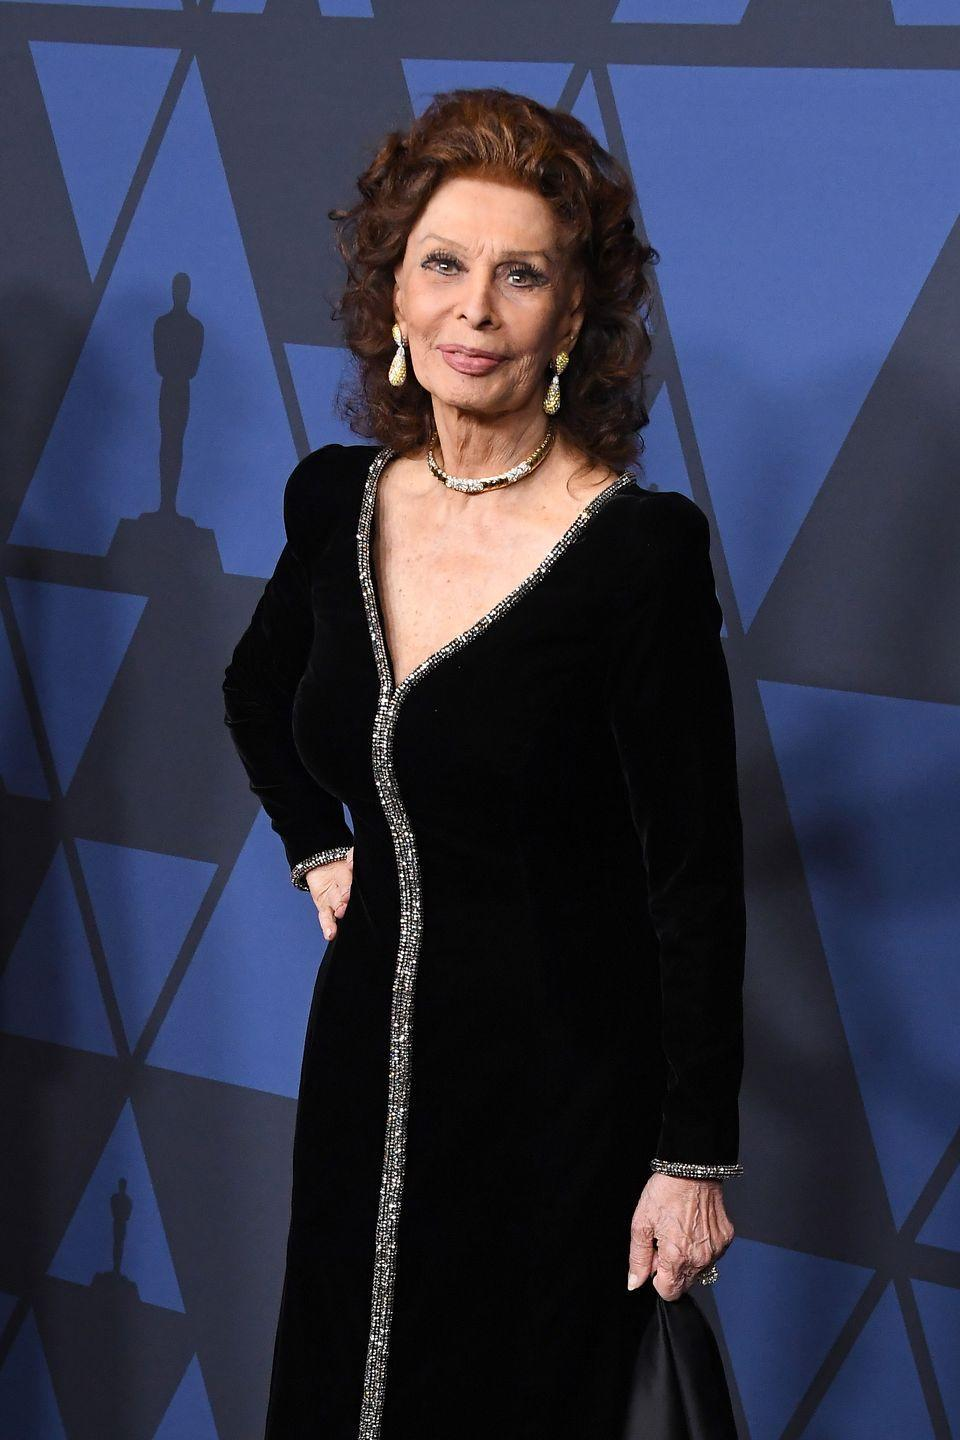 <p>Sophia went on to become one of the biggest names during the Golden Era of Hollywood and became an Academy Award-winning actress.</p>